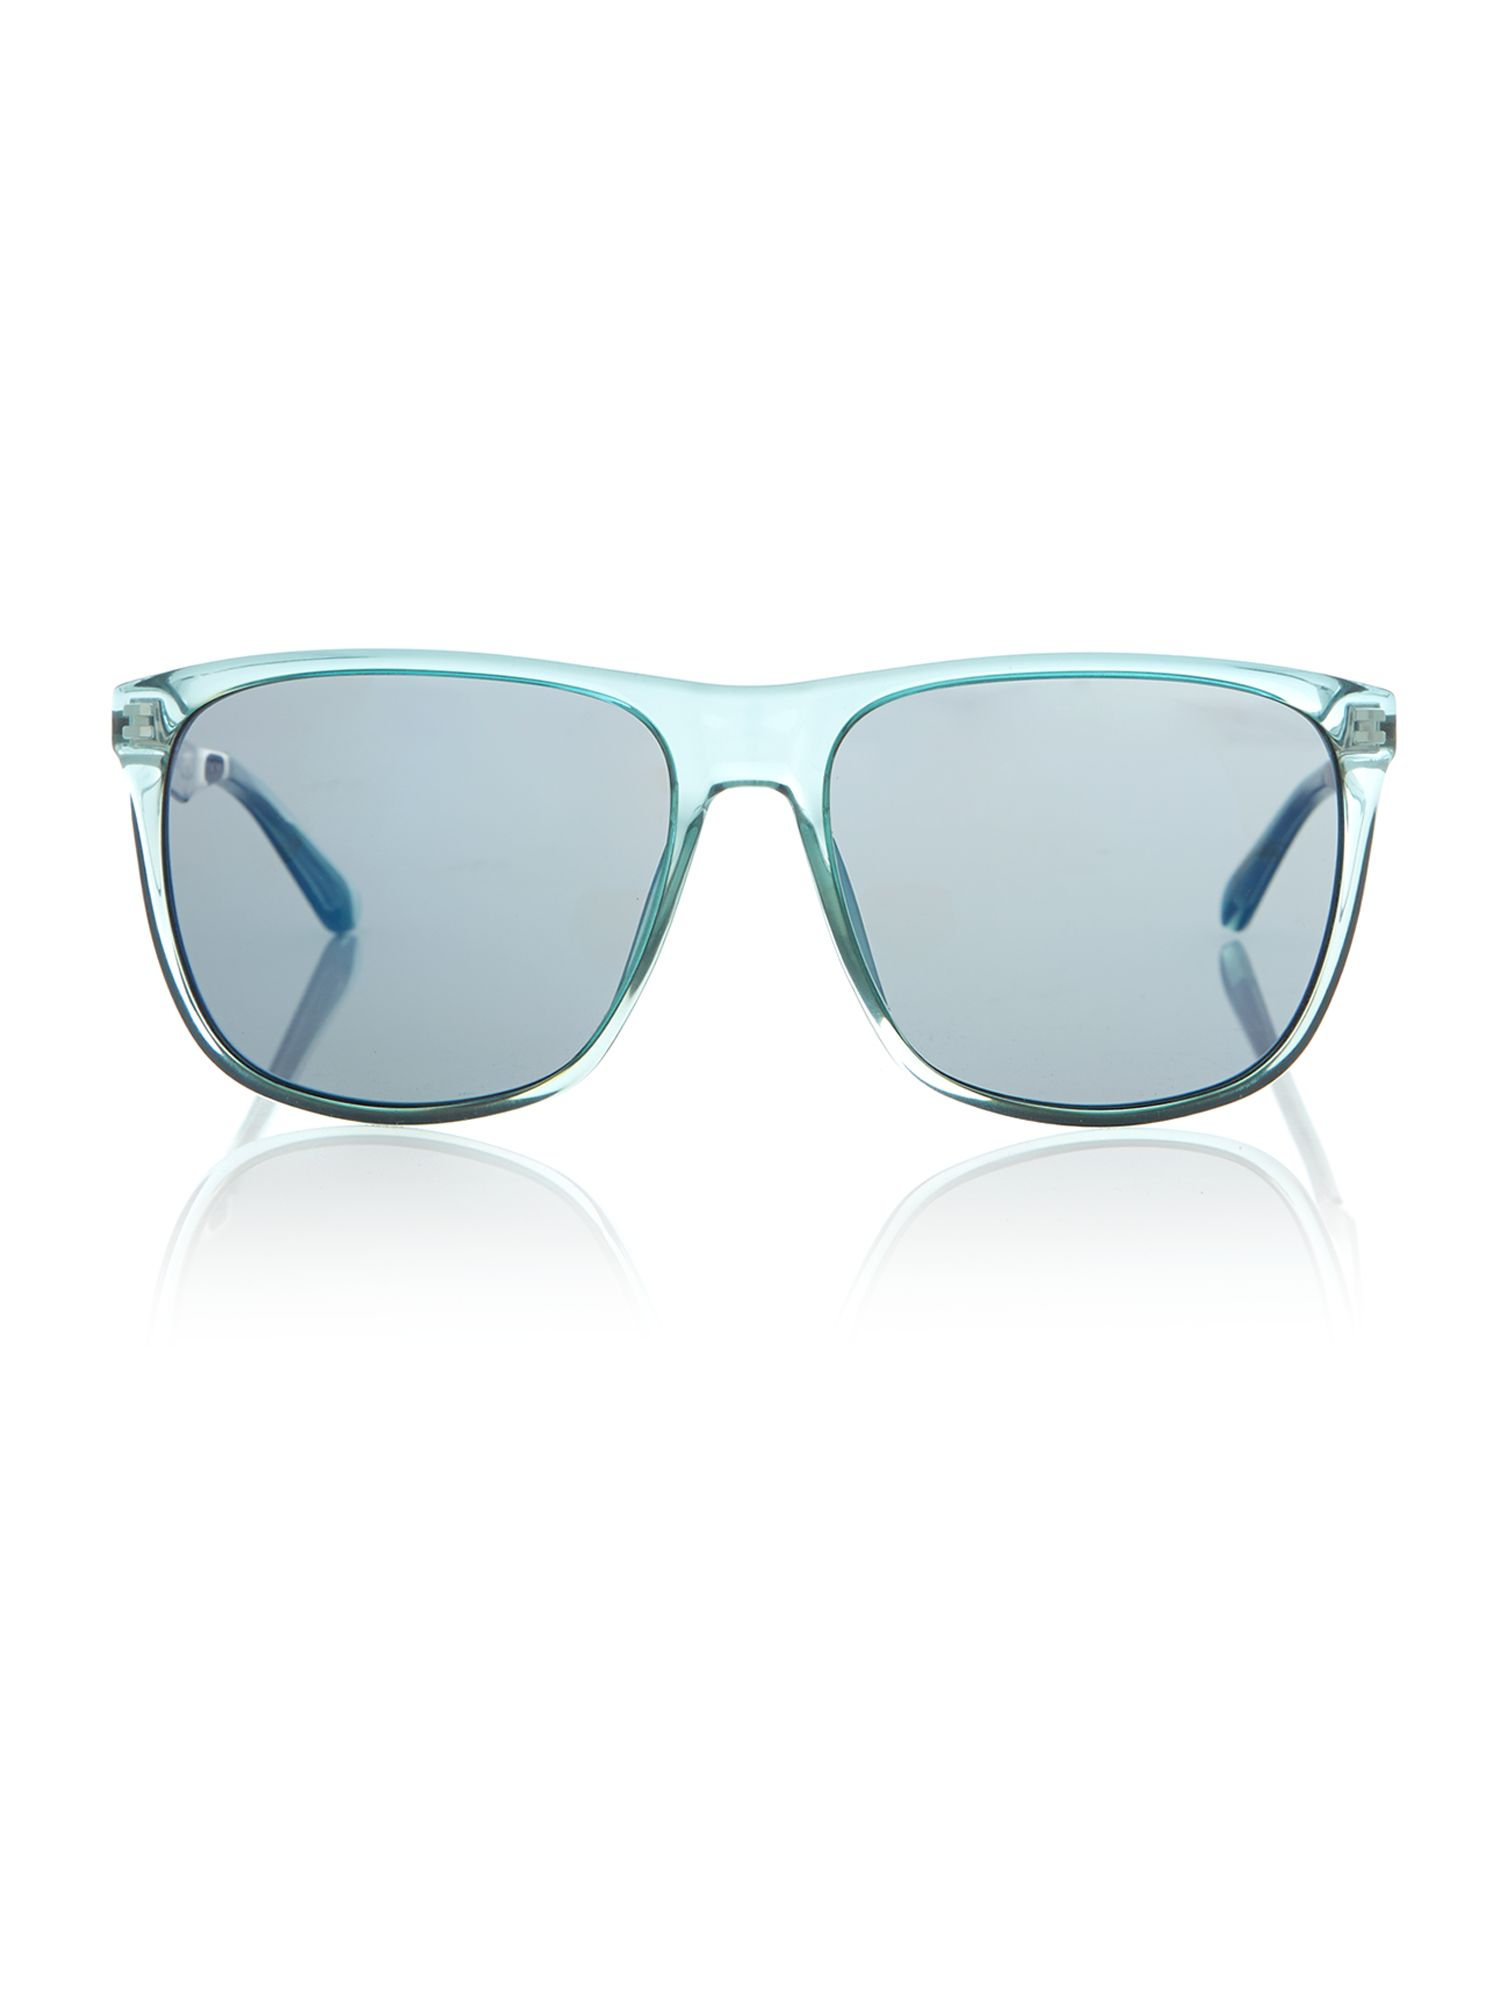 Polar 1 Sunglasses  marc by marc jacobs women s blue polar square sunglasses in blue